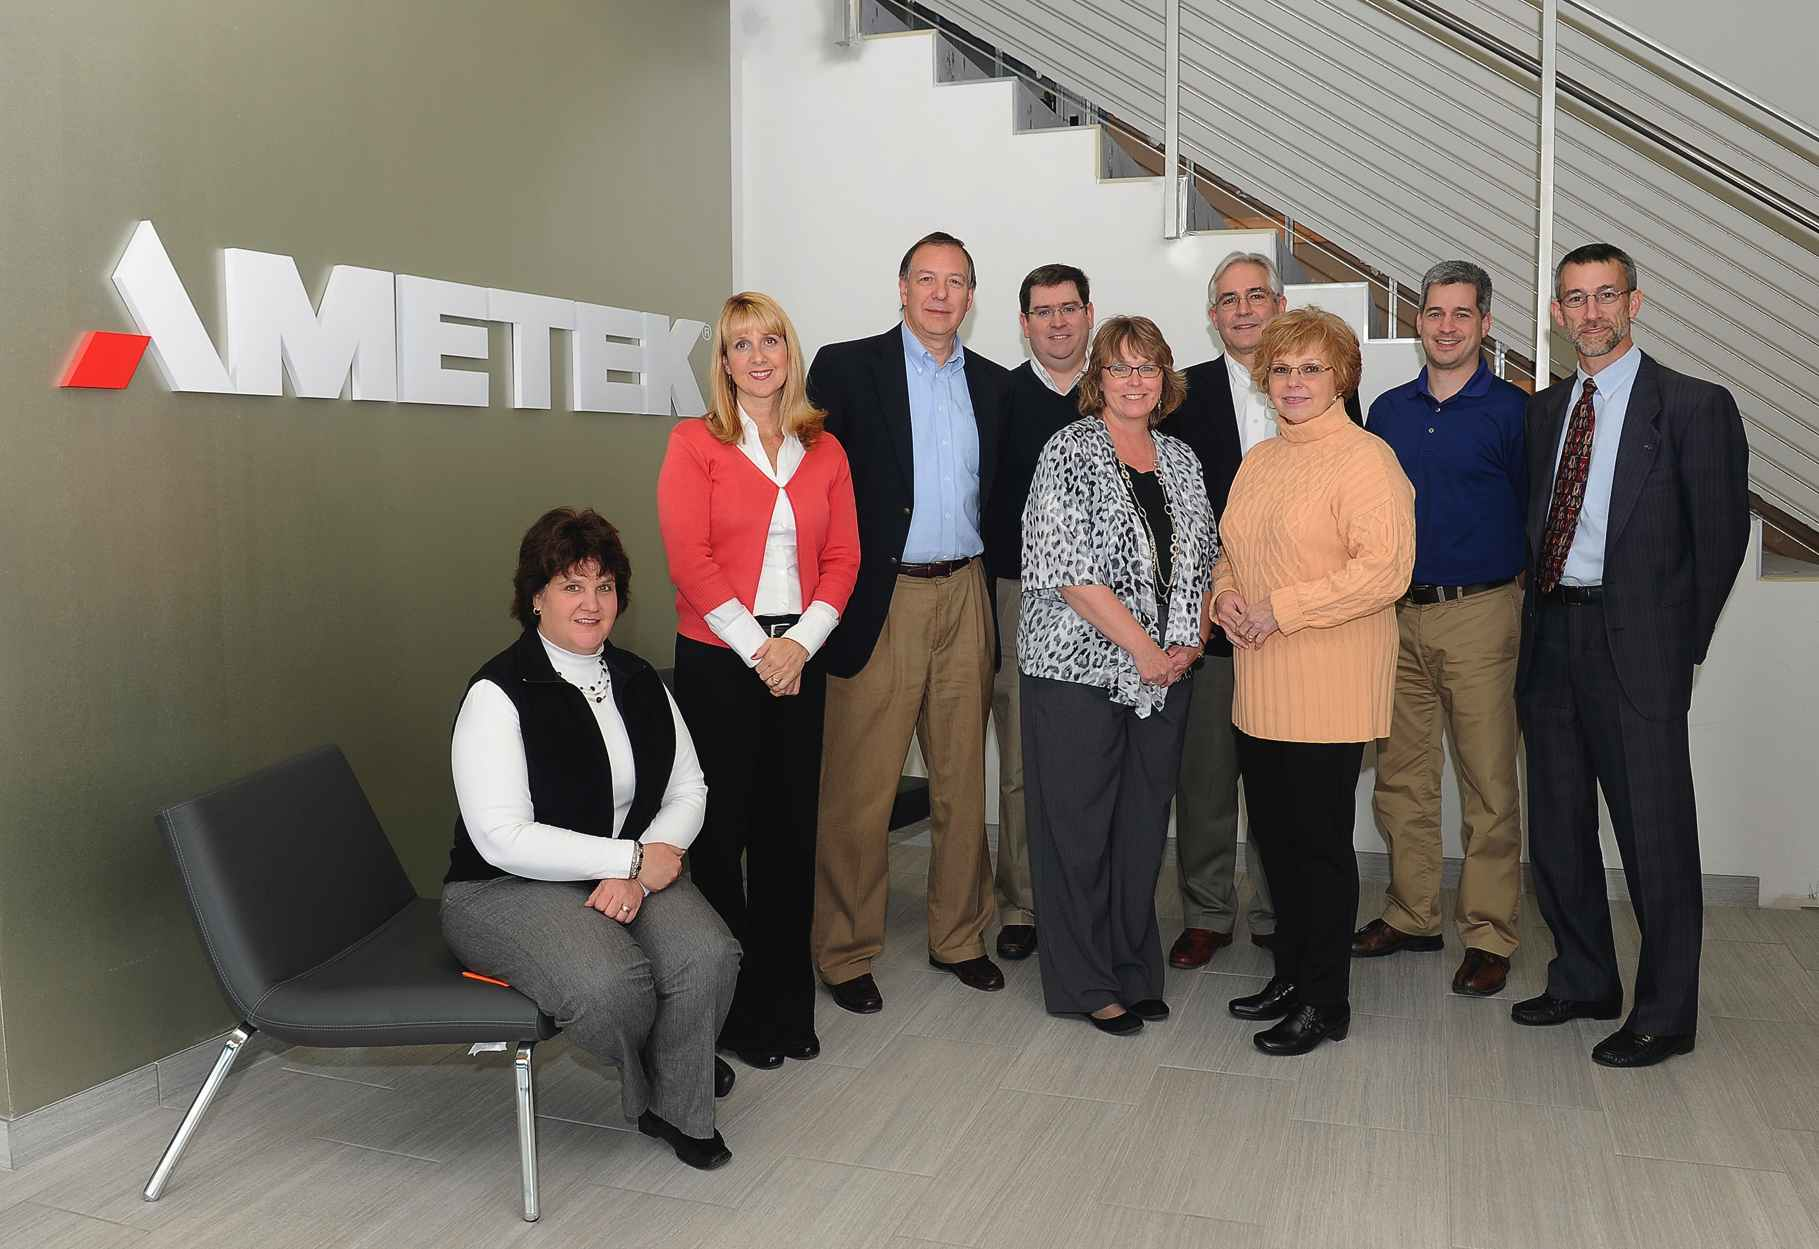 Berwyn-Based Ametek's Recent Acquisition Sets Stage for Expansion into Other Markets